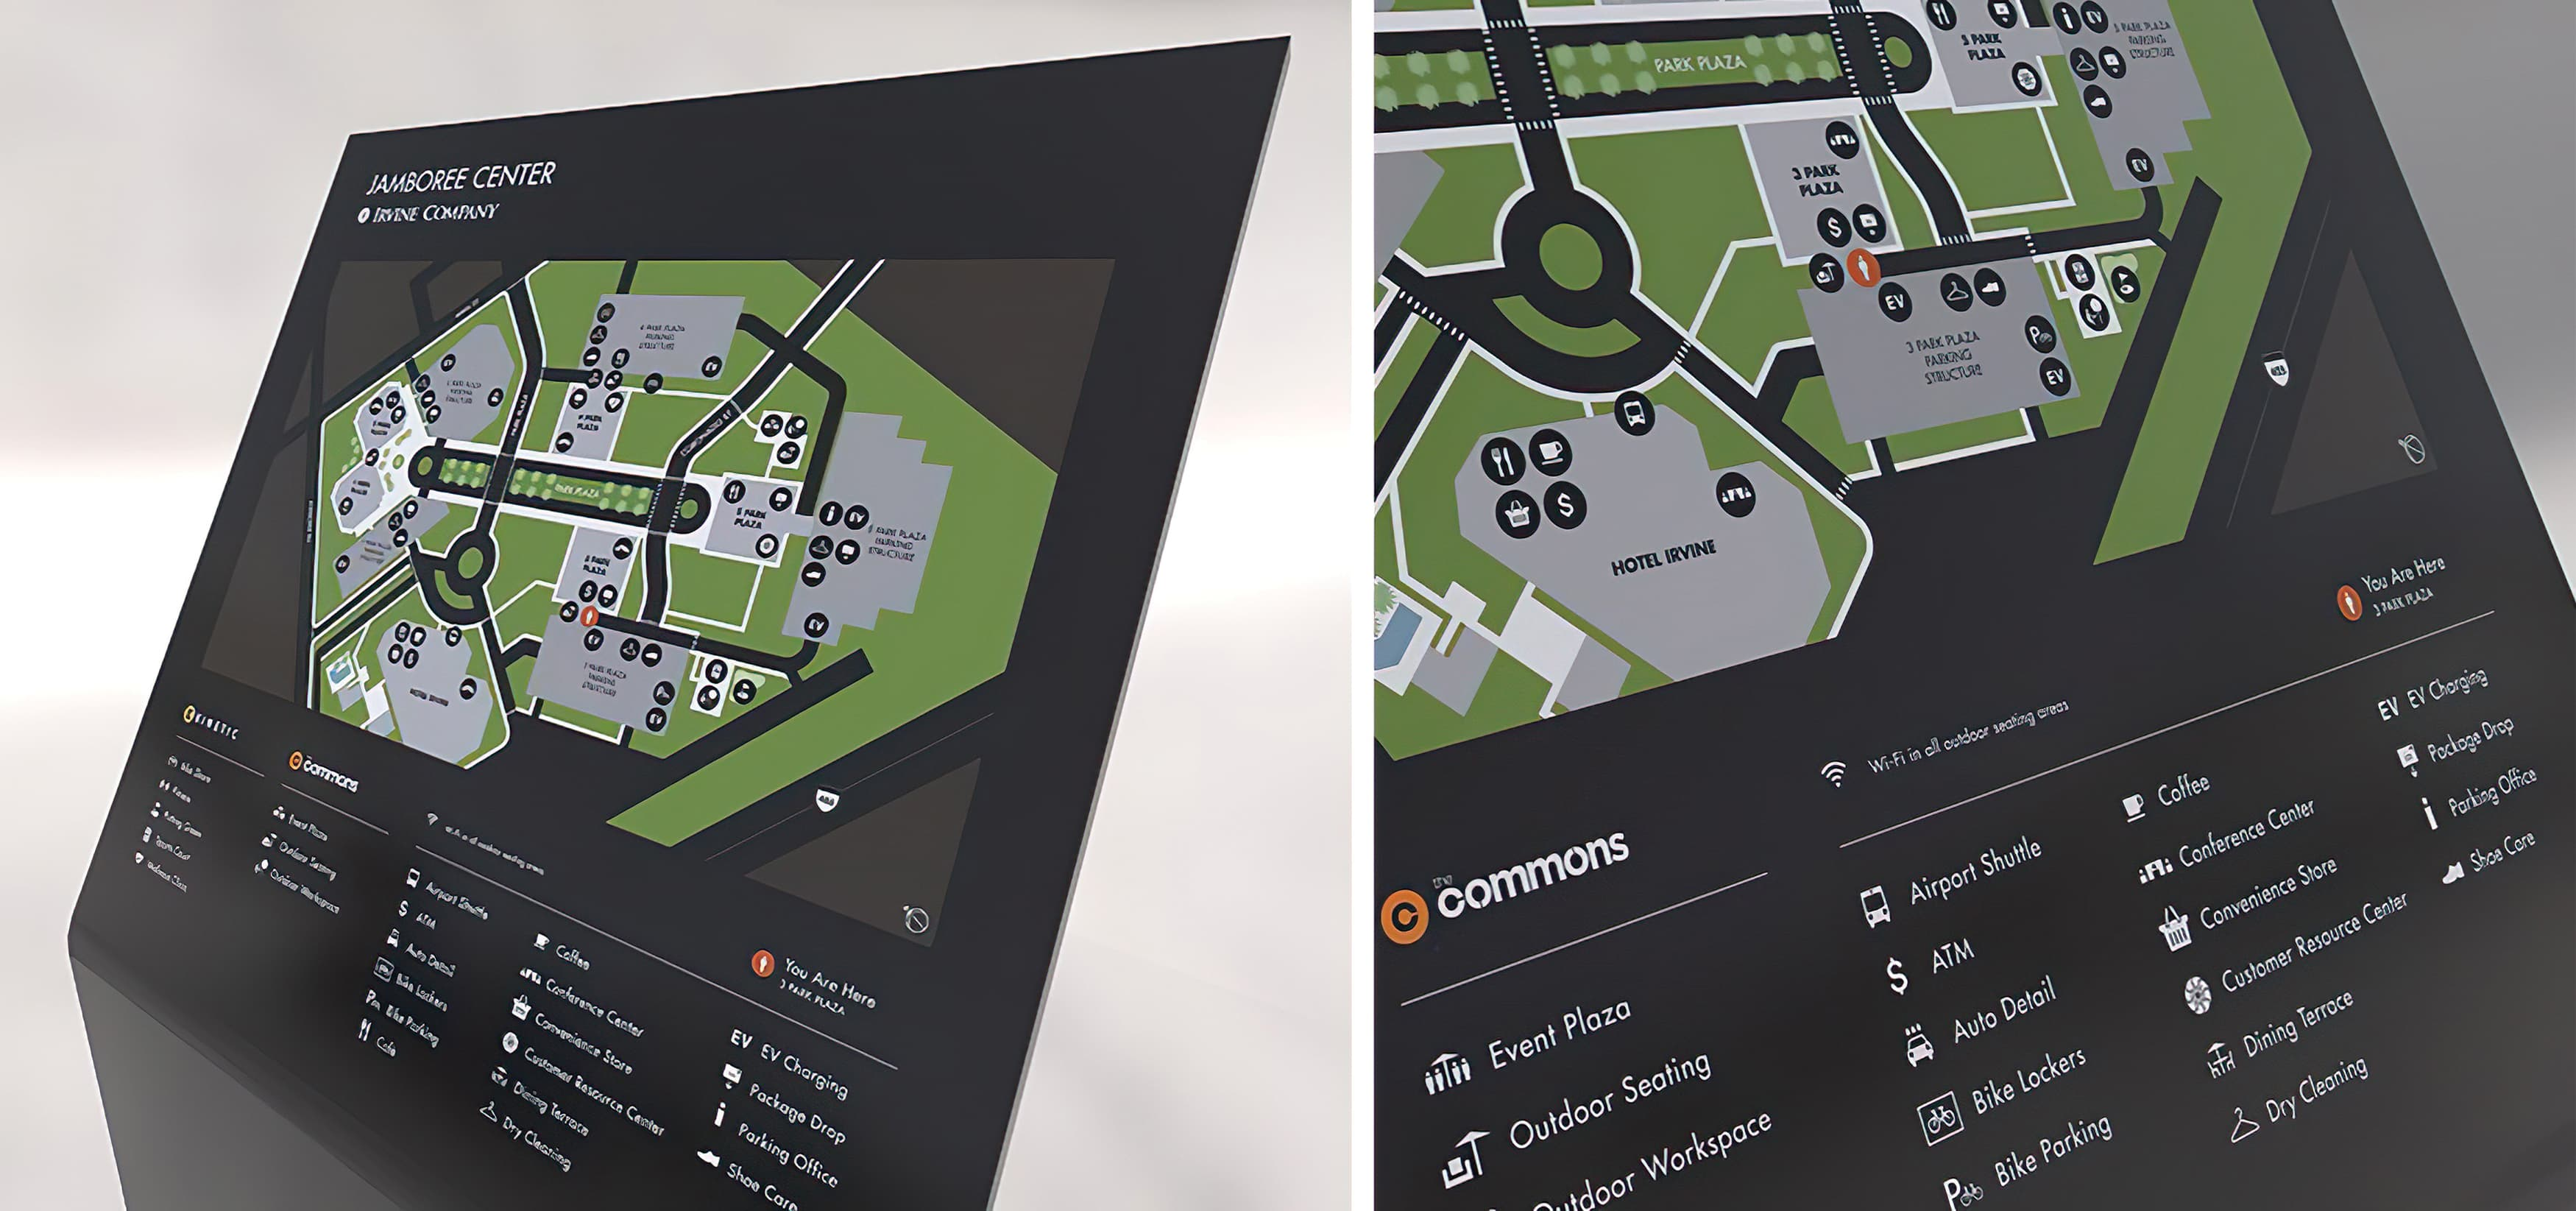 1 Park Plaza, an Irvine Company workplace, campus map design.